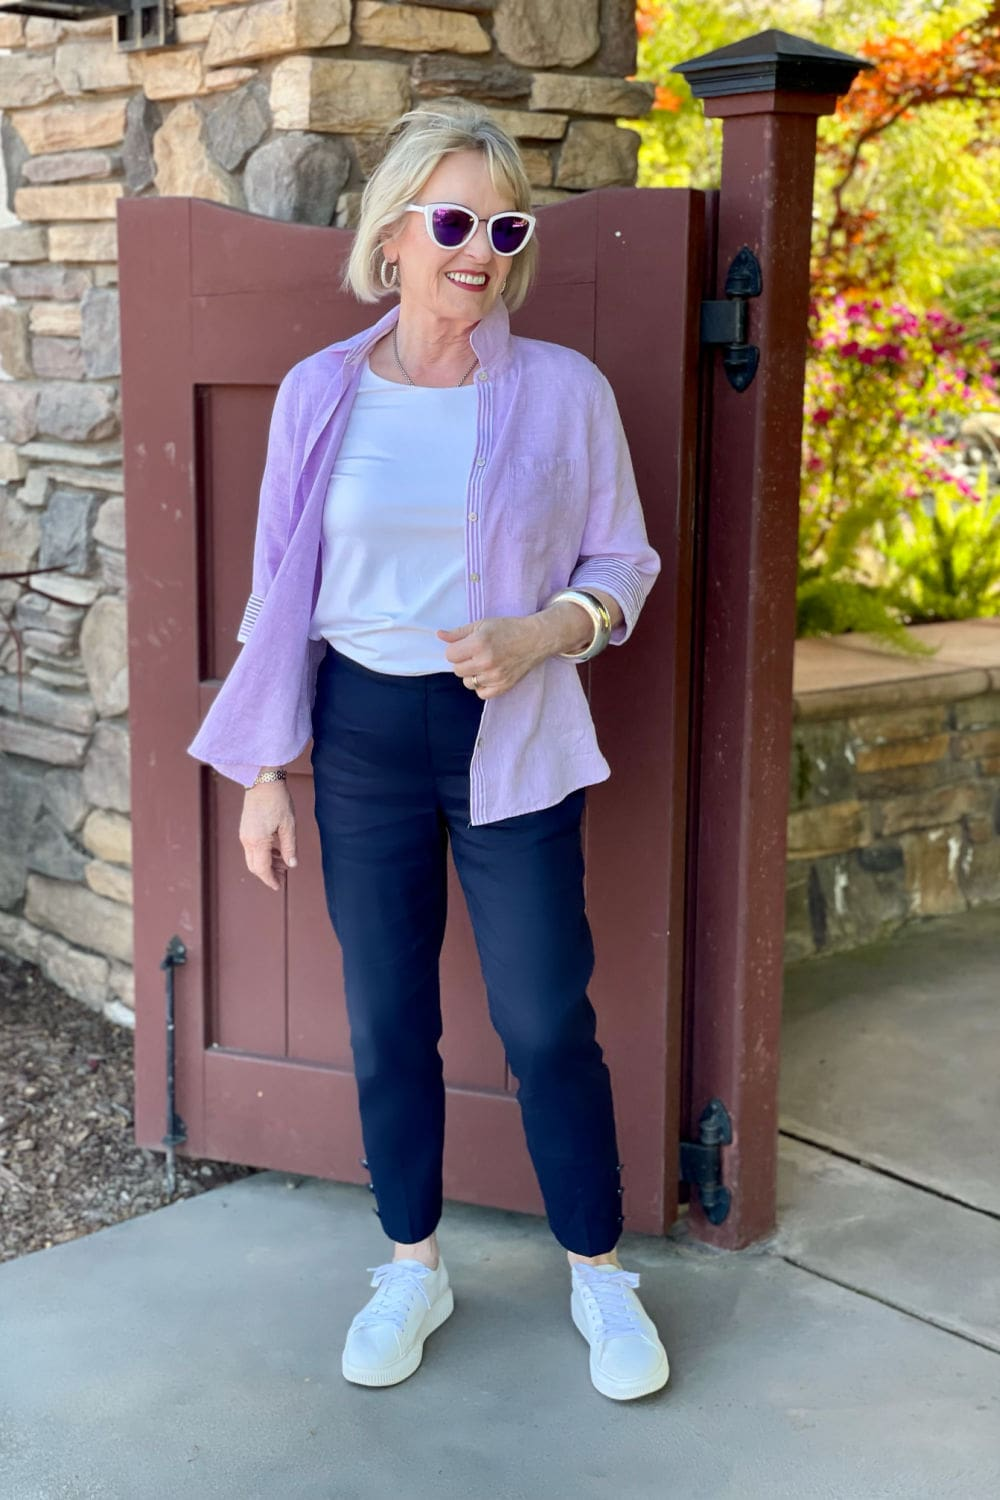 jennifer of a well styled life wearing linen shirt, linen pants and white sneakers with purple sunglasses